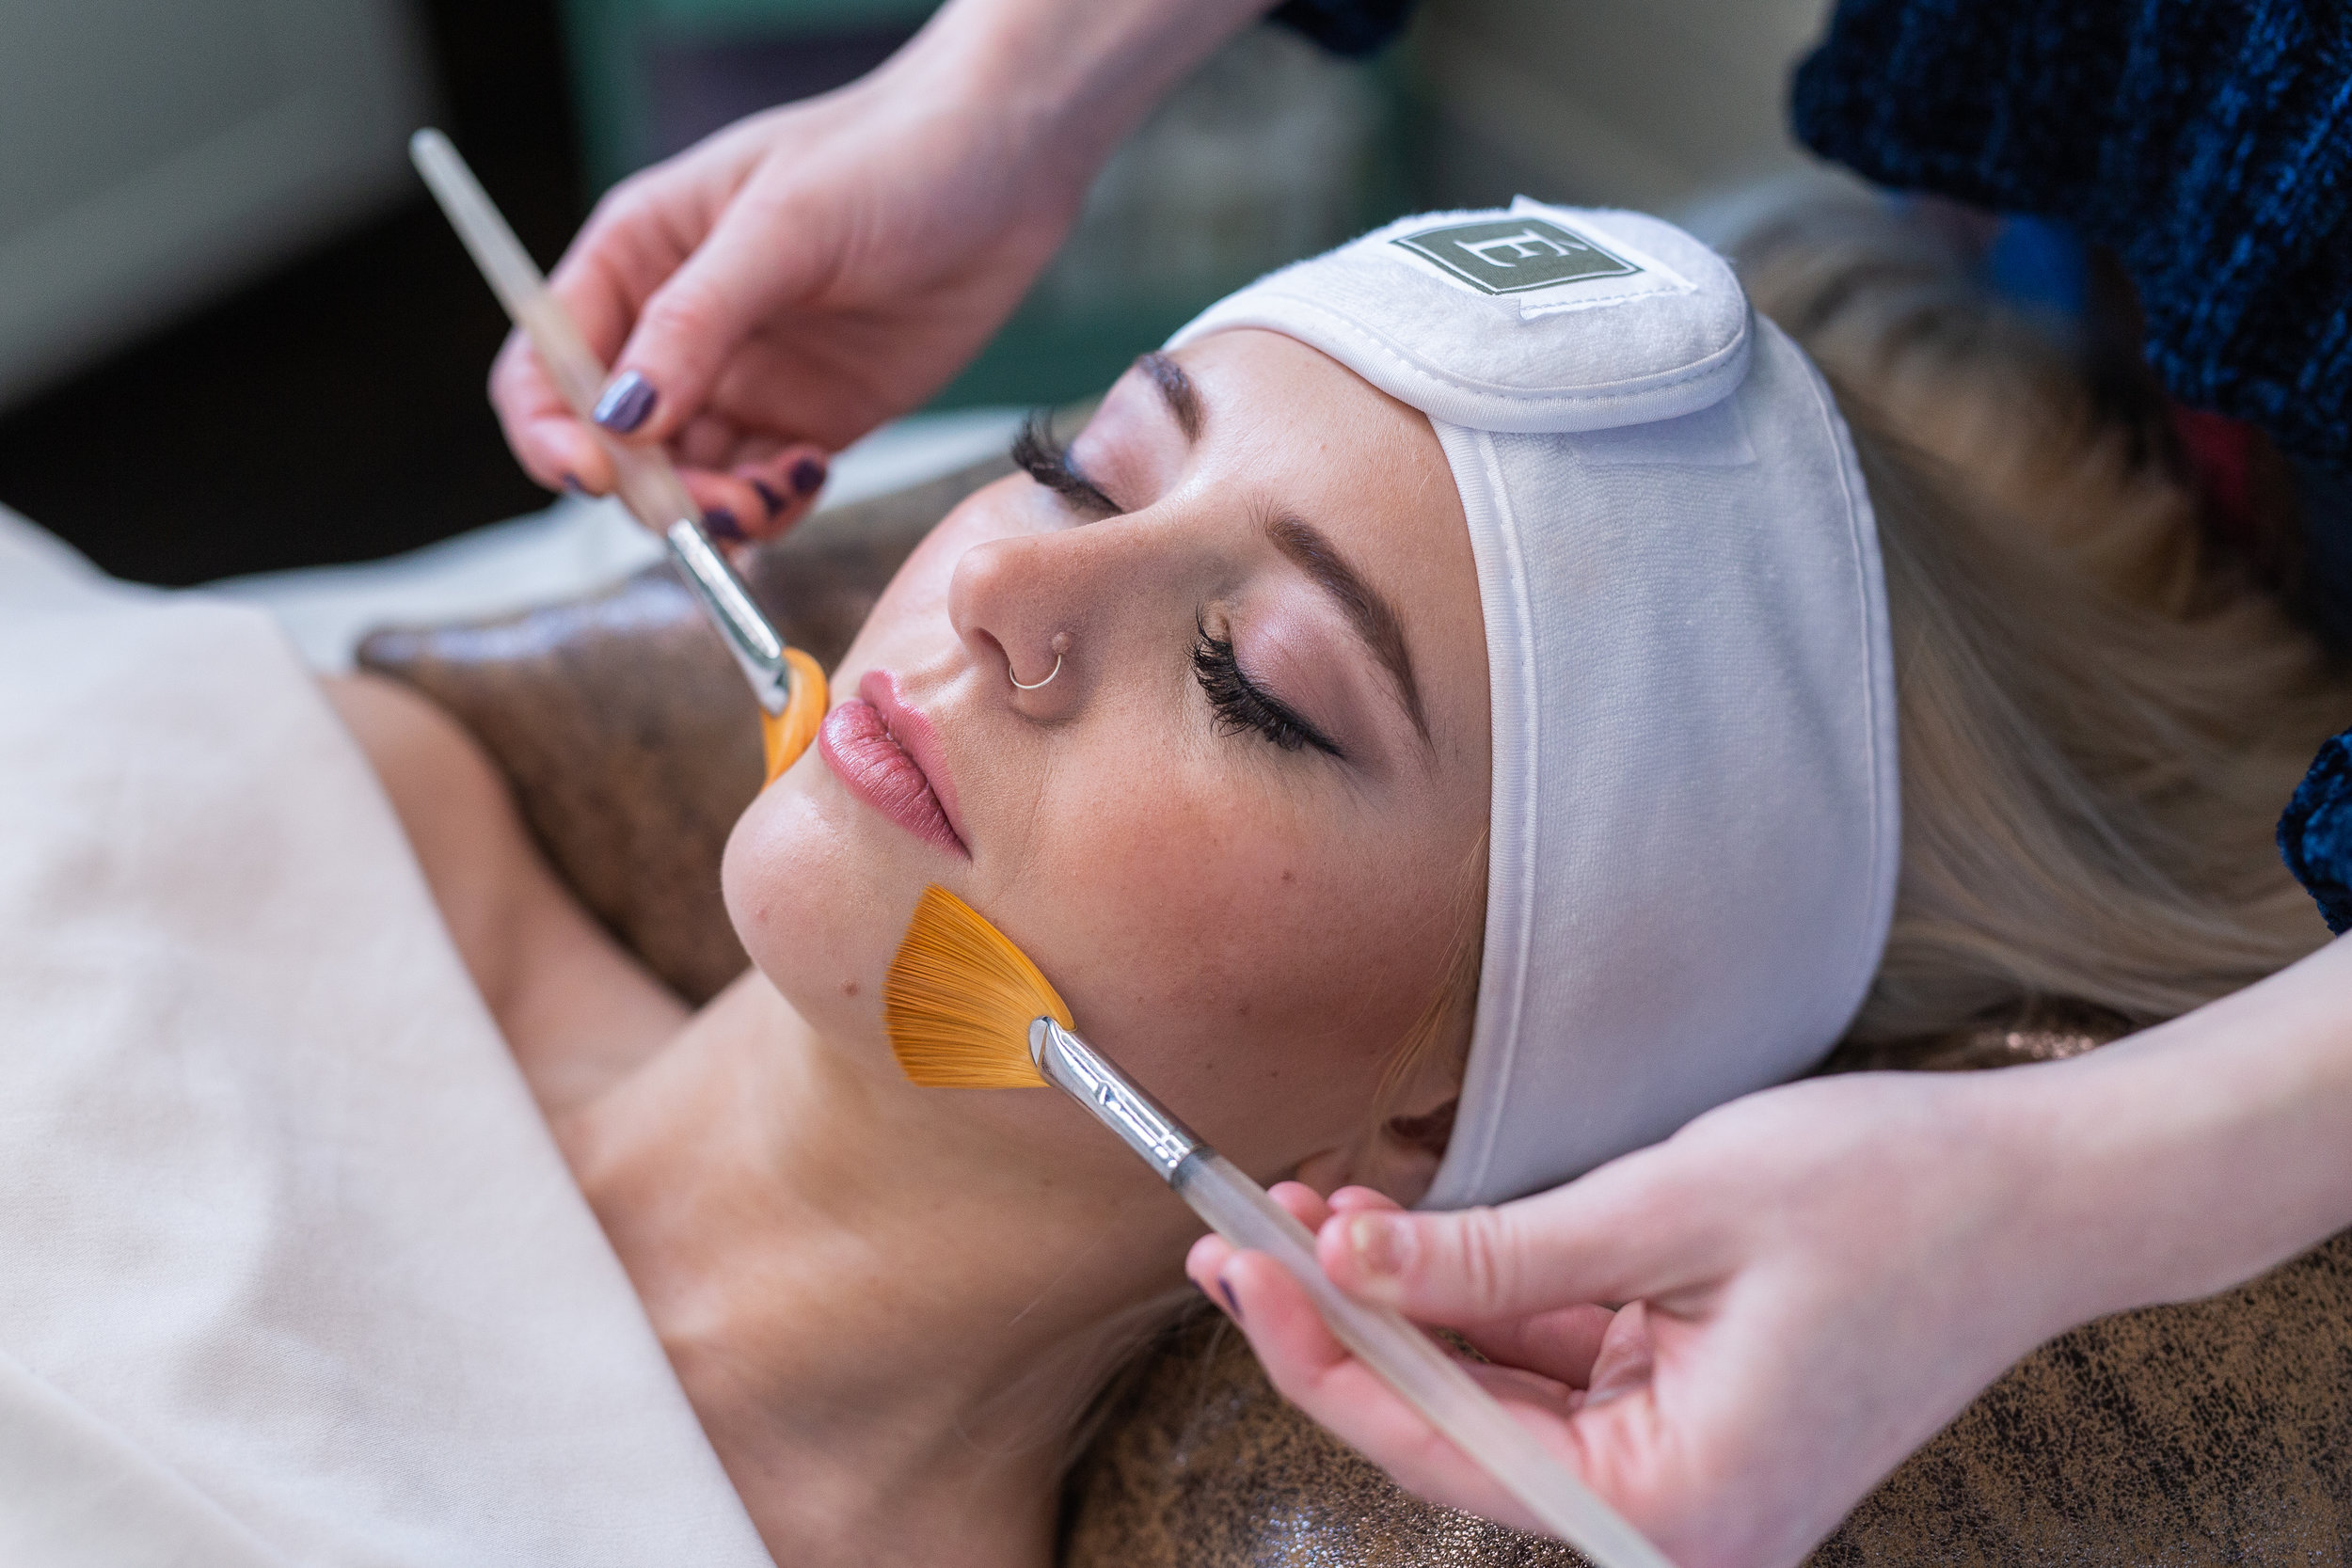 Red Carpet Facials - With the use of the Eminence Organic Skin Care products, we will leave your skin red carpet ready. This menu is designed to maximize your time in service by delivering instant results.Facials are available only at the Nashville location at this time